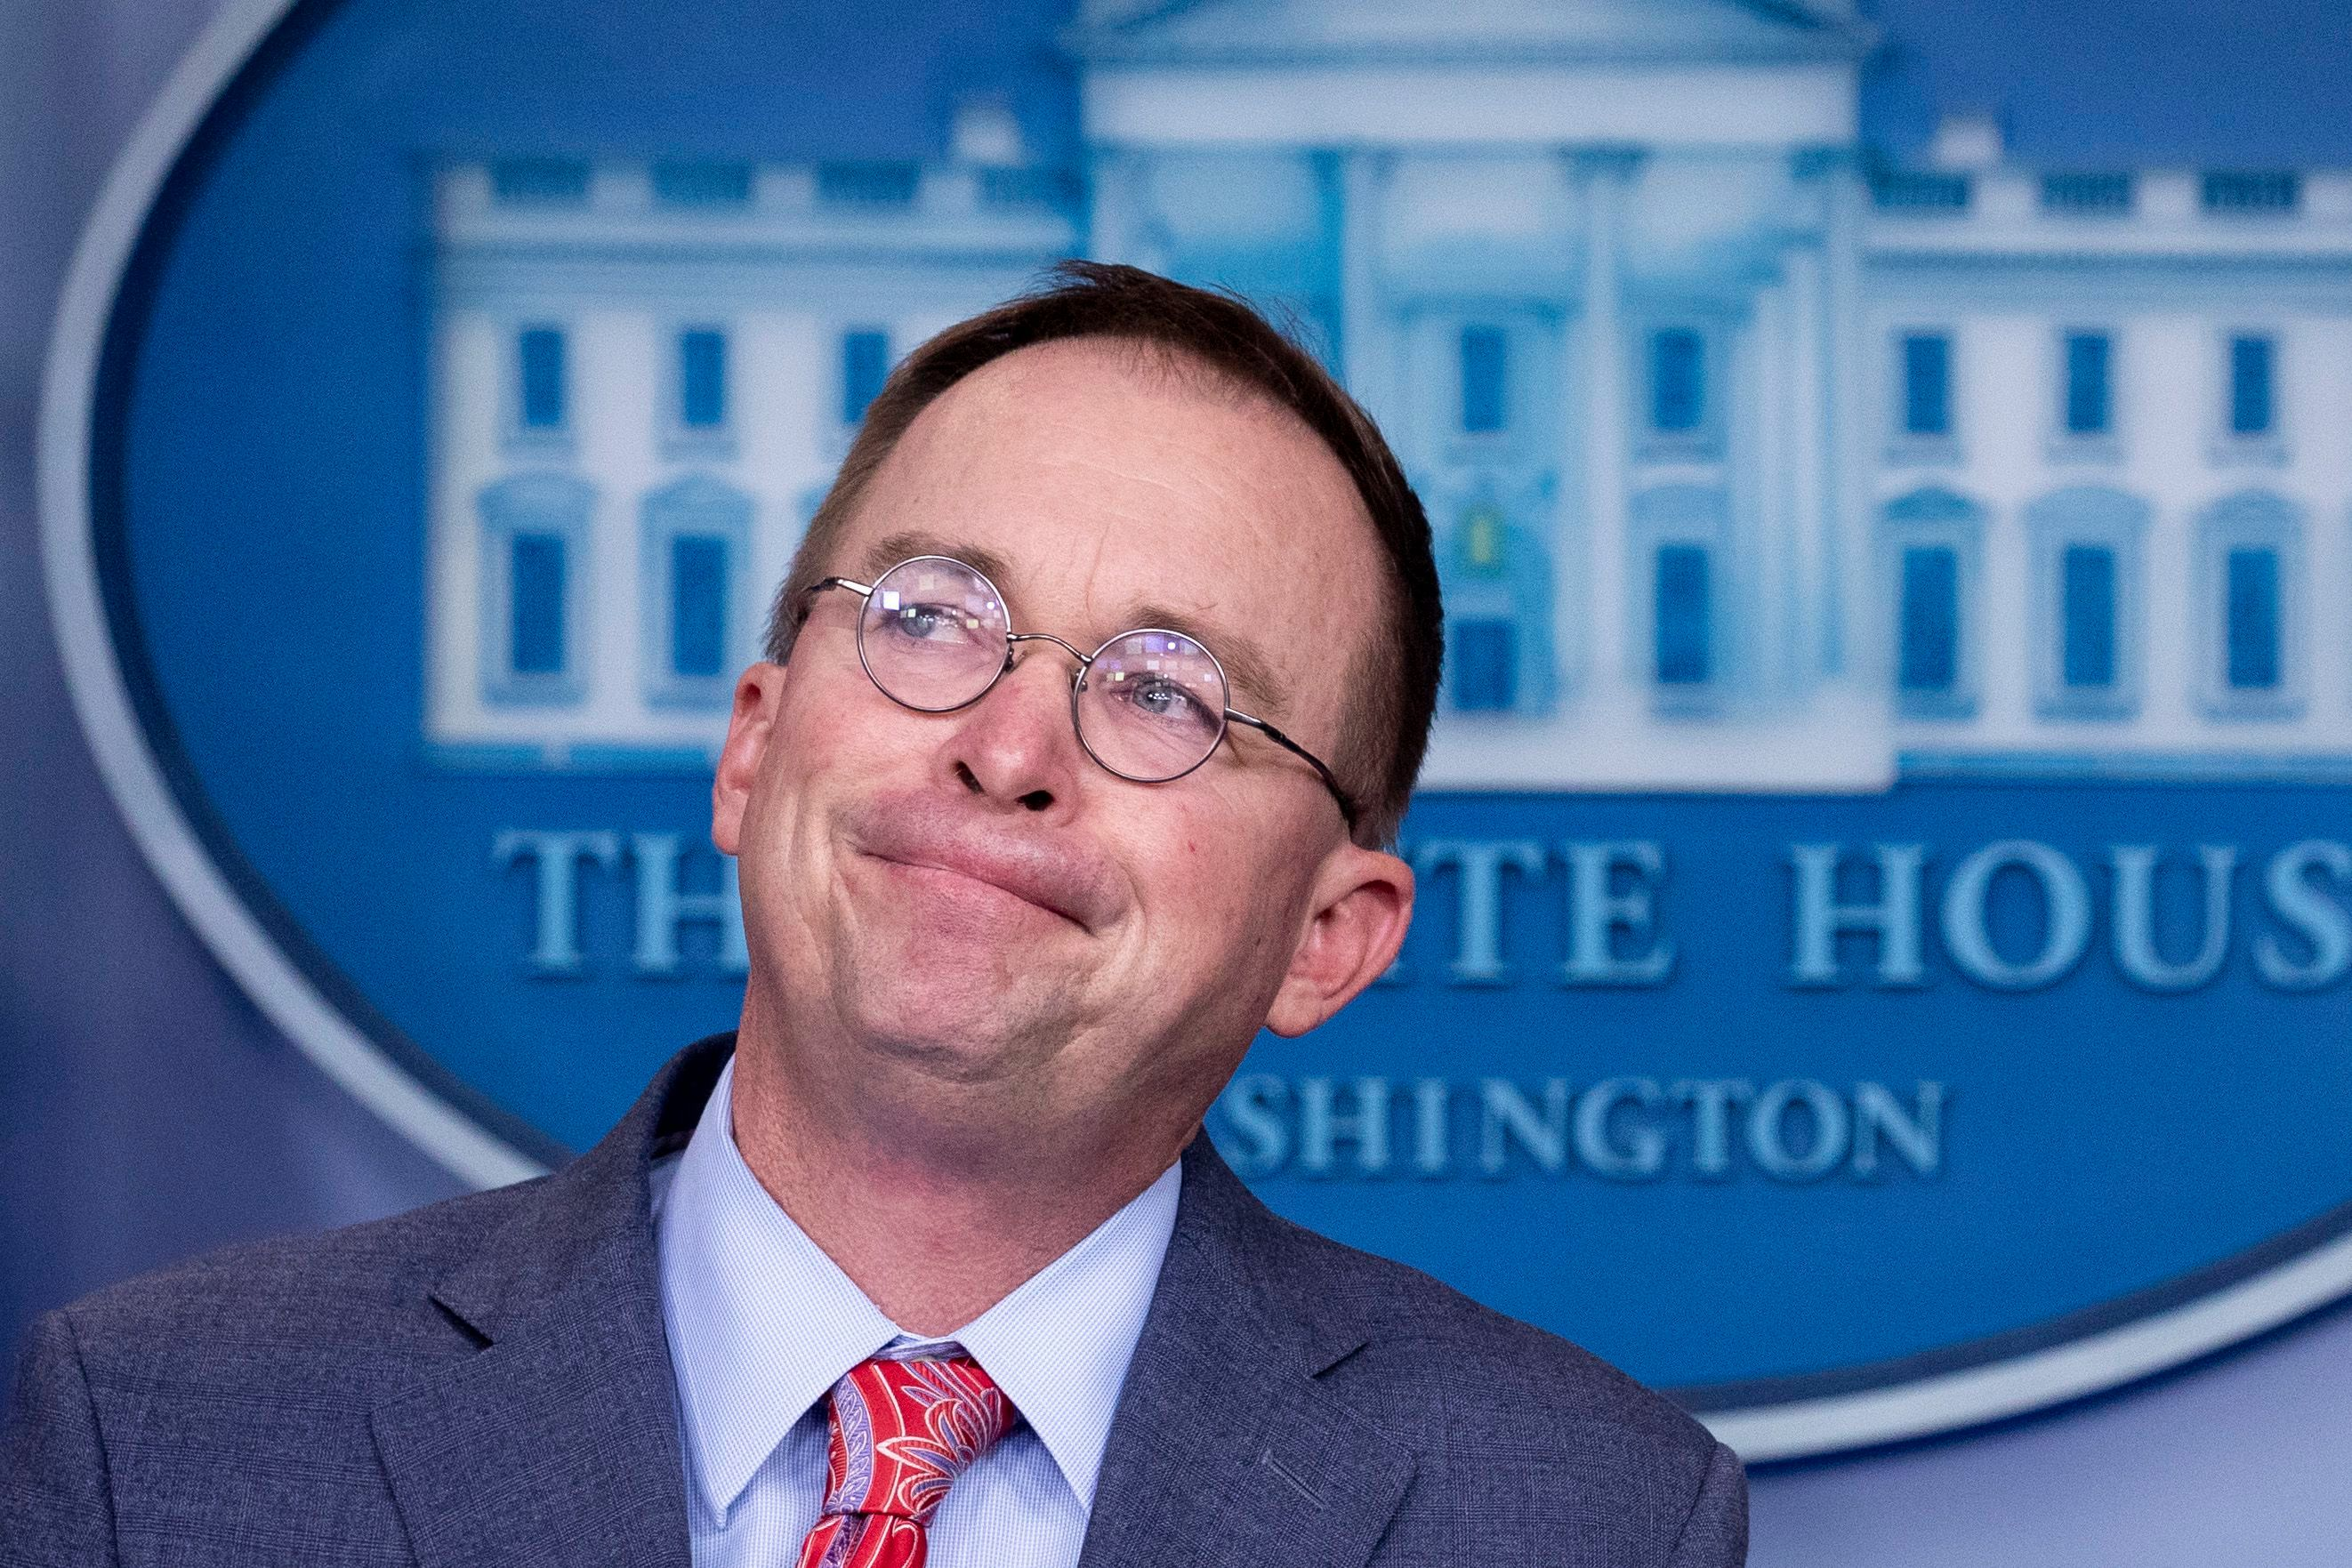 Sorry, Mick Mulvaney. I can't 'get over it.' - The Washington Post